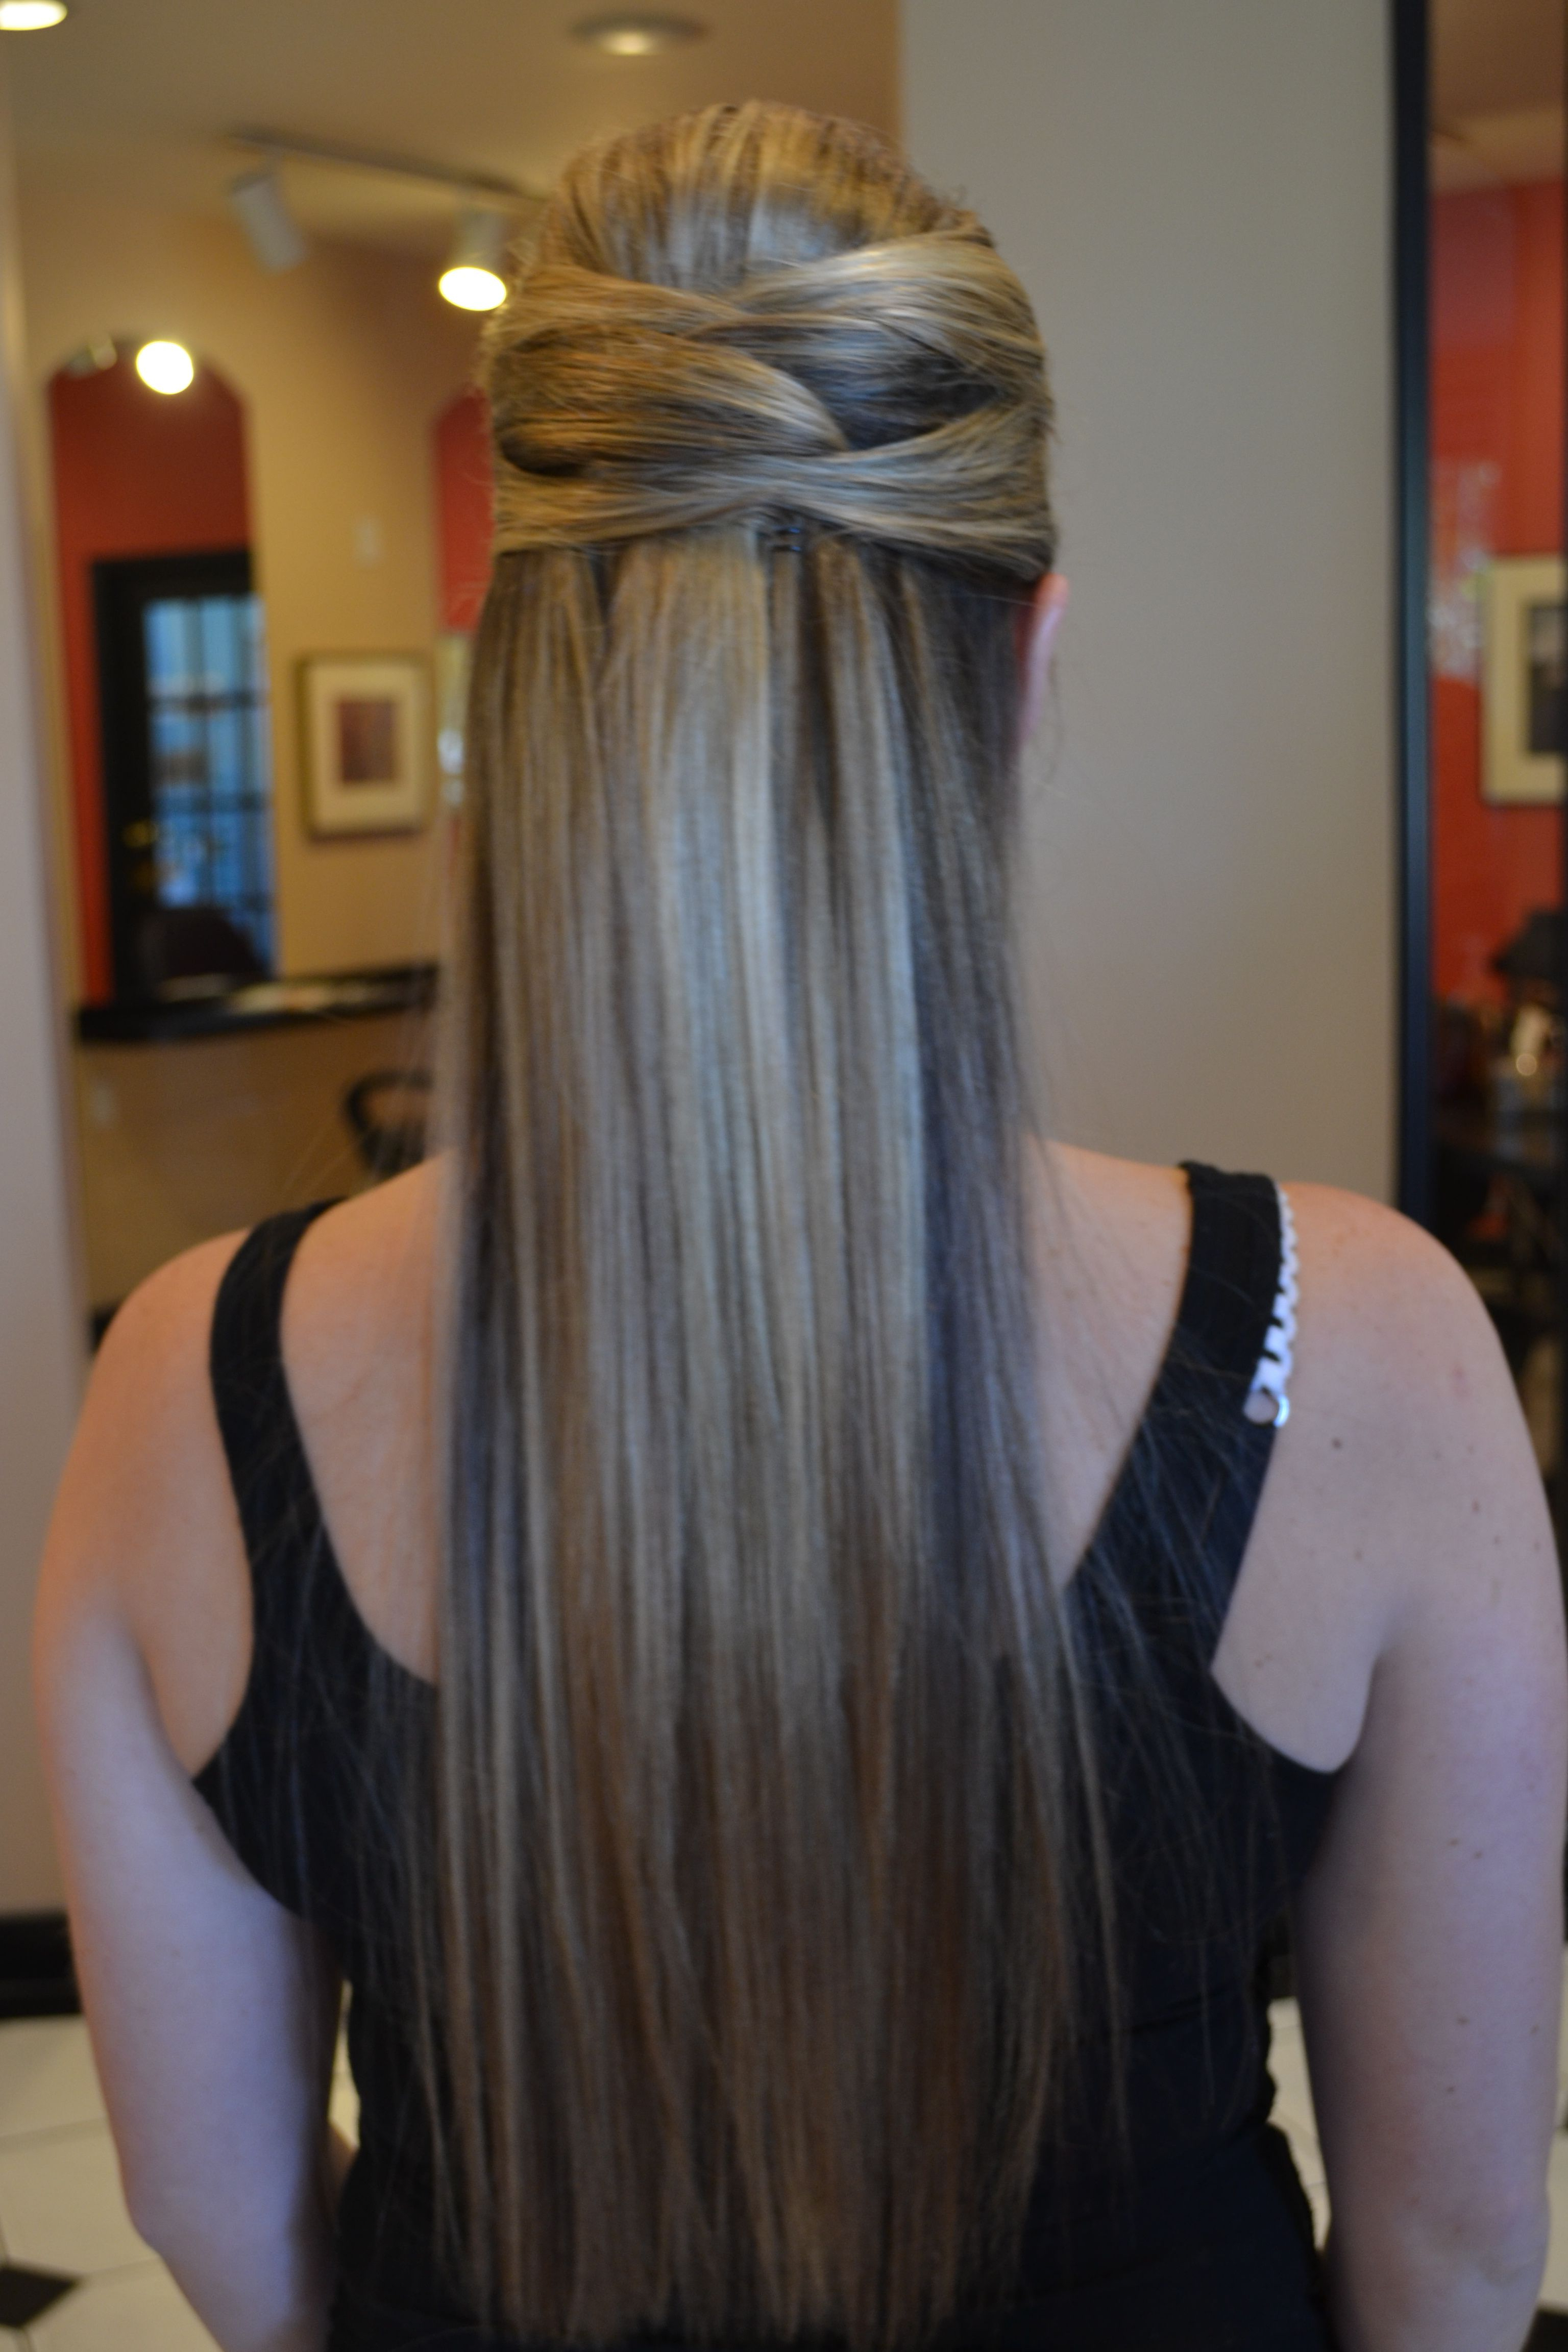 Simple Bridesmaid Hairstyle For Wedding (Long, Straight Hair In Best And Newest Large Hair Rollers Bridal Hairstyles (Gallery 15 of 20)